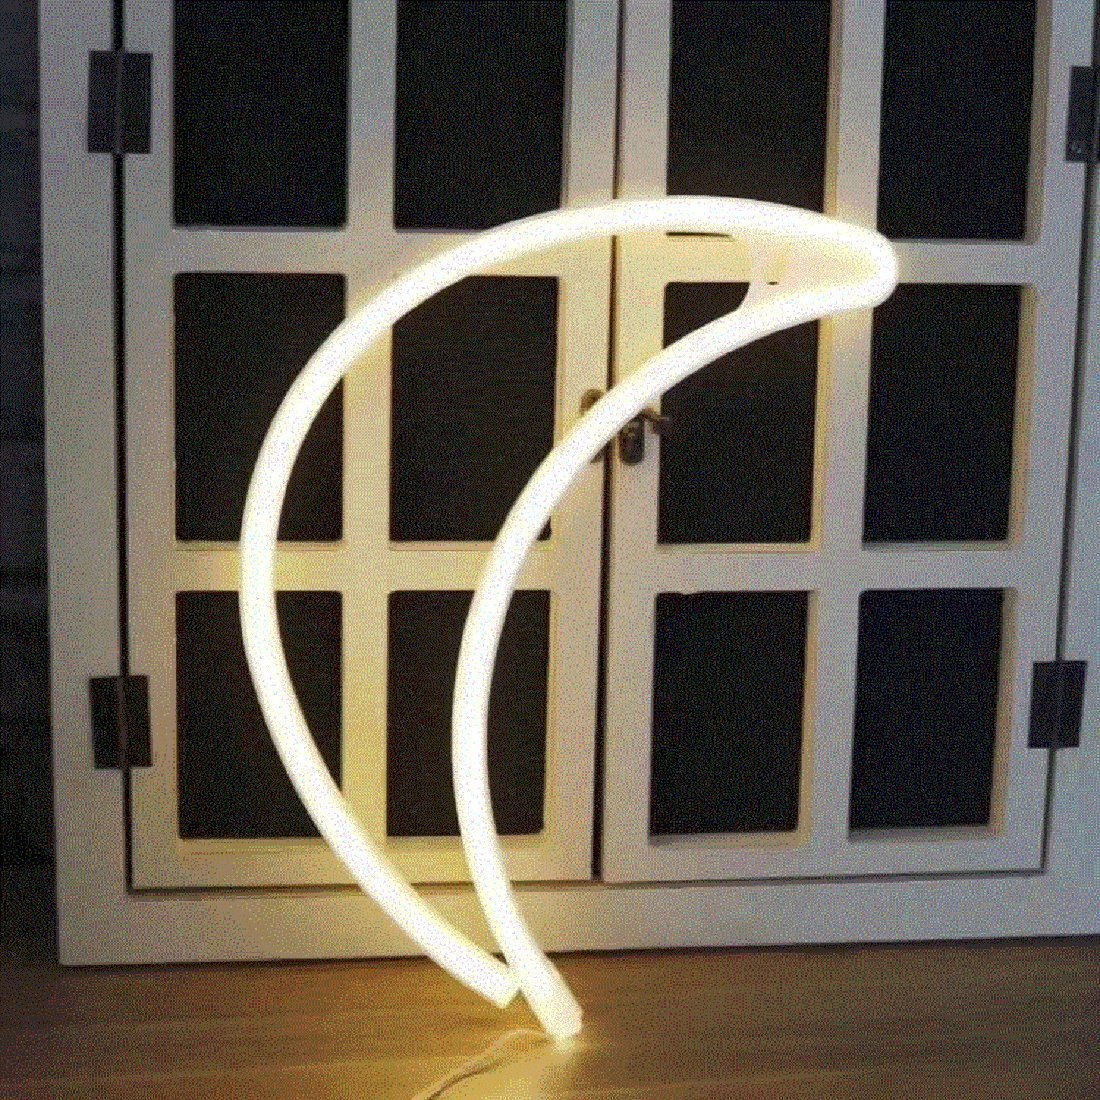 Soft White Soft White, Moon Neon Signs LED Decor Light Wall Decor for Christmas Decoration Birthday Party Home LED Decorative Lights Wedding Event Banquet Party Decor KoolTech